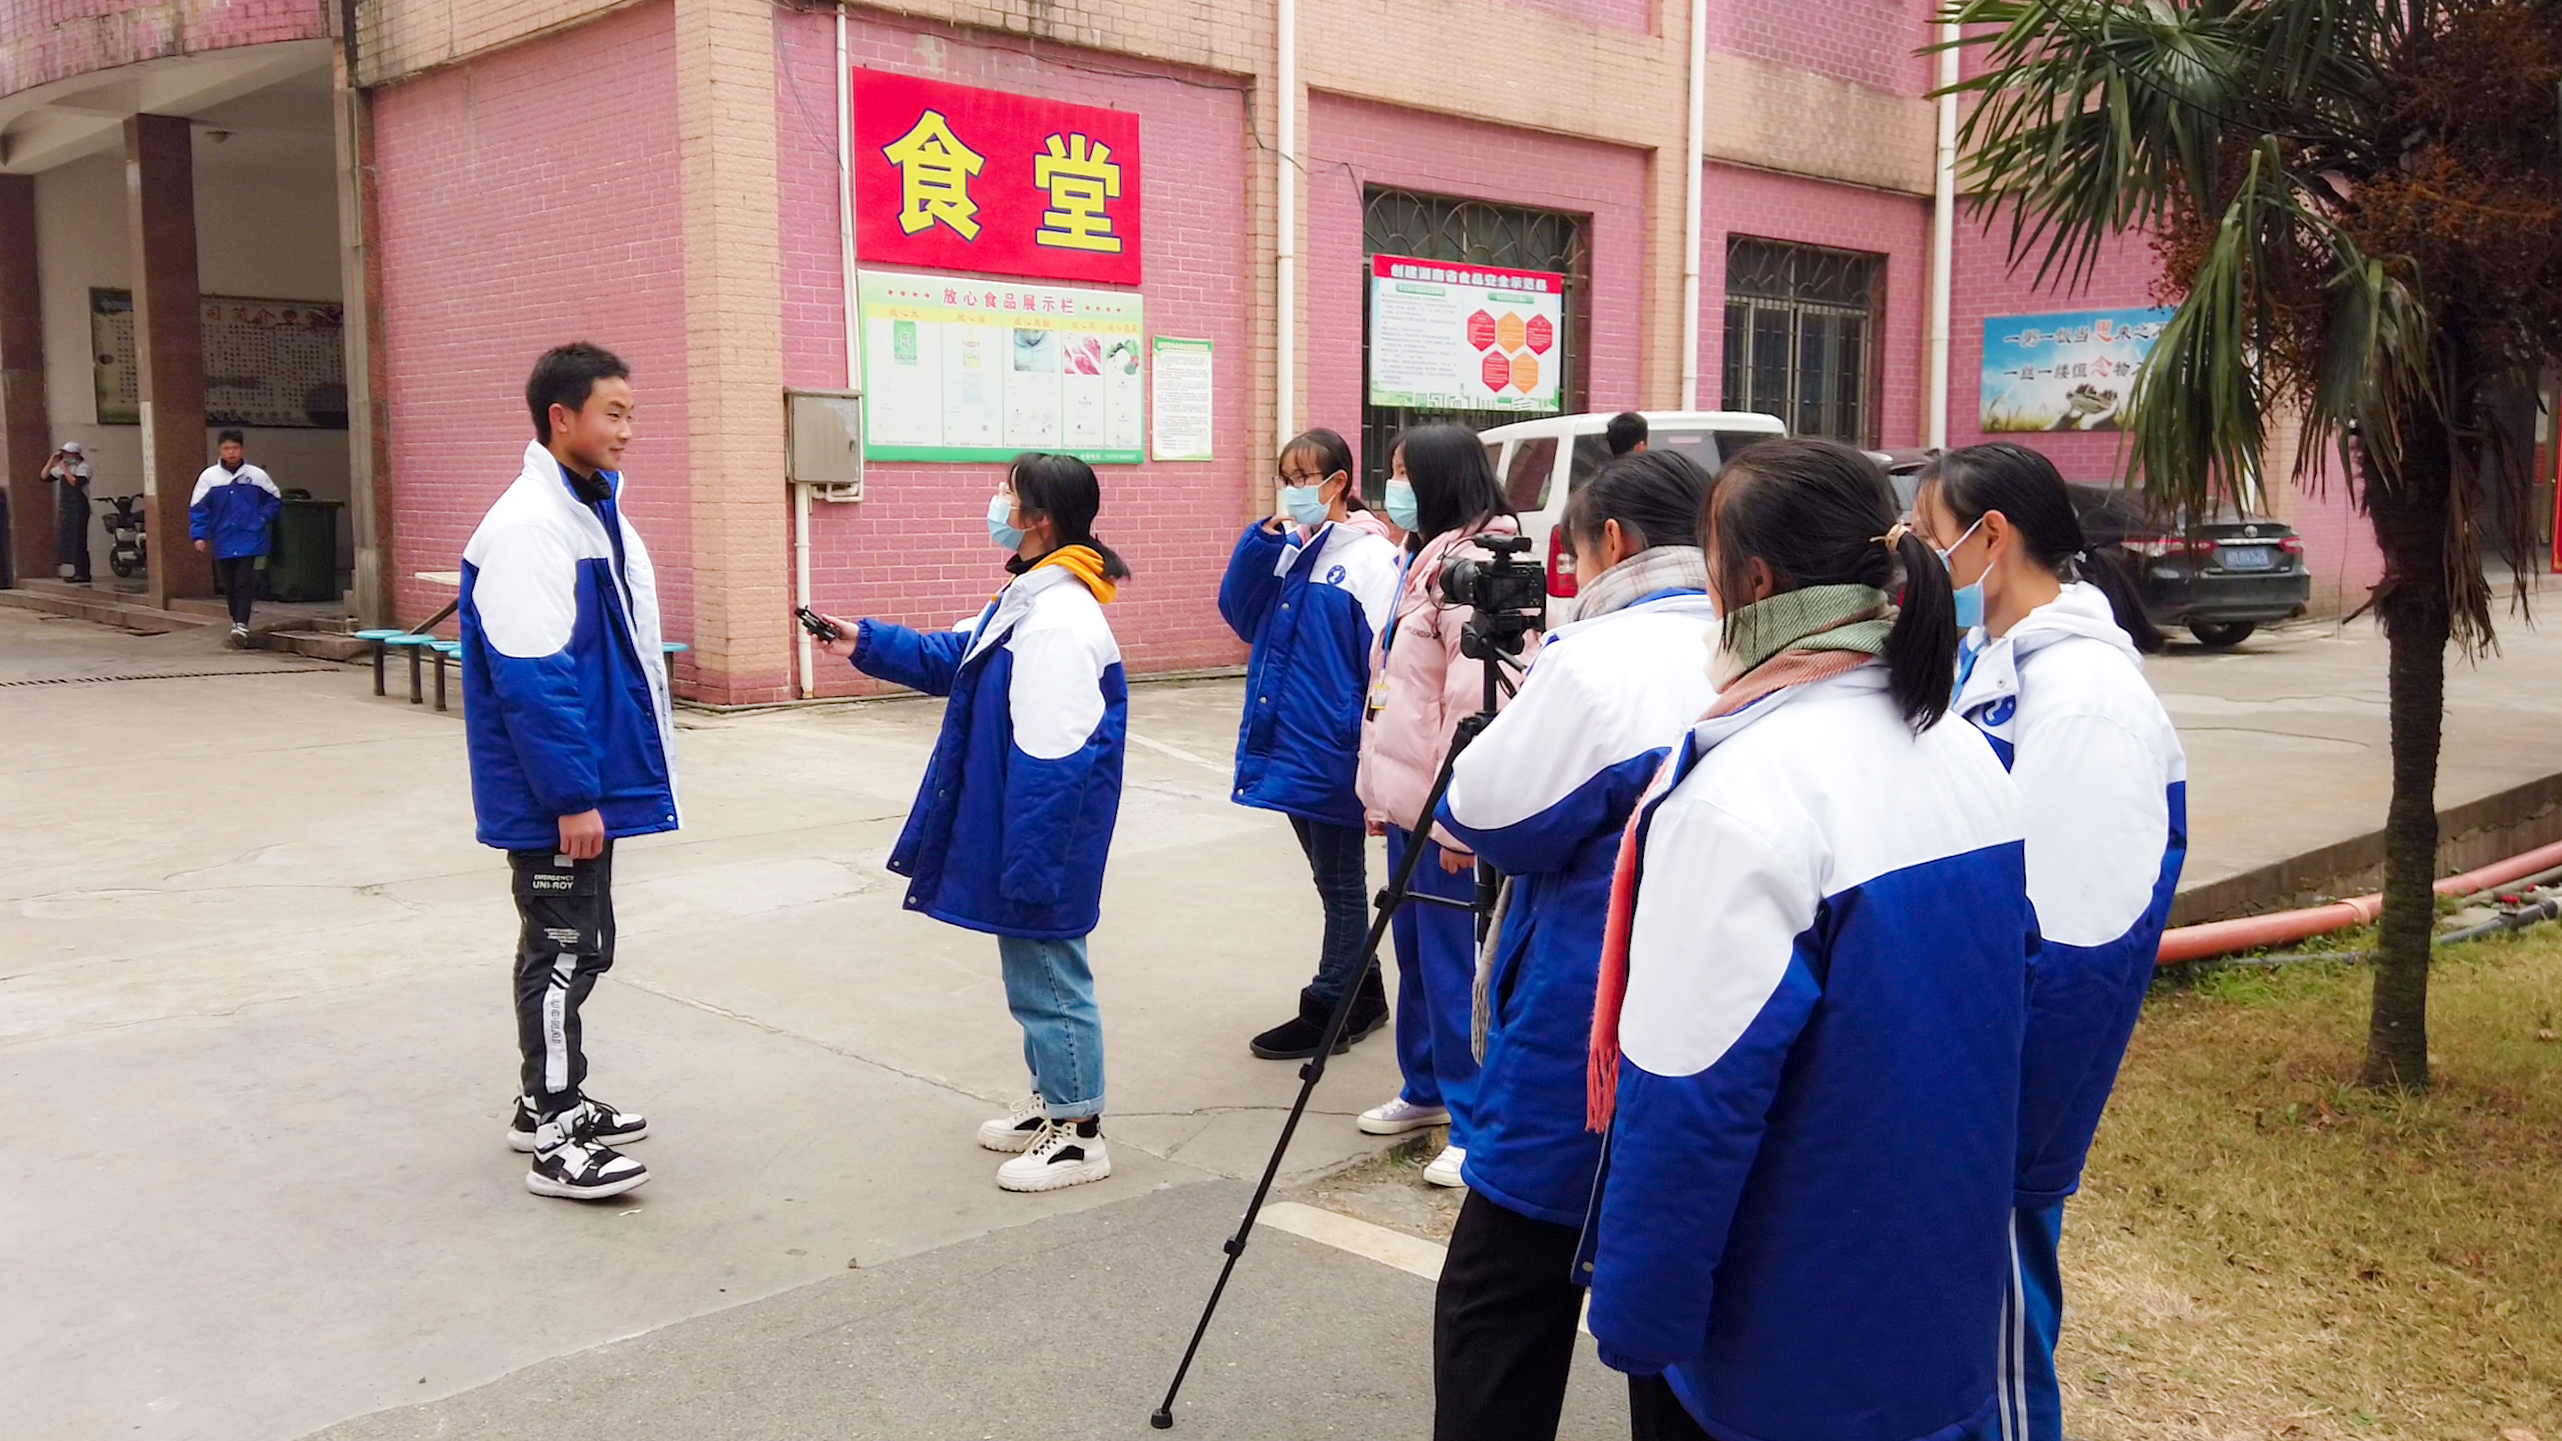 Uniformed students with camera and recorder interview classmate in front of school cafeteria